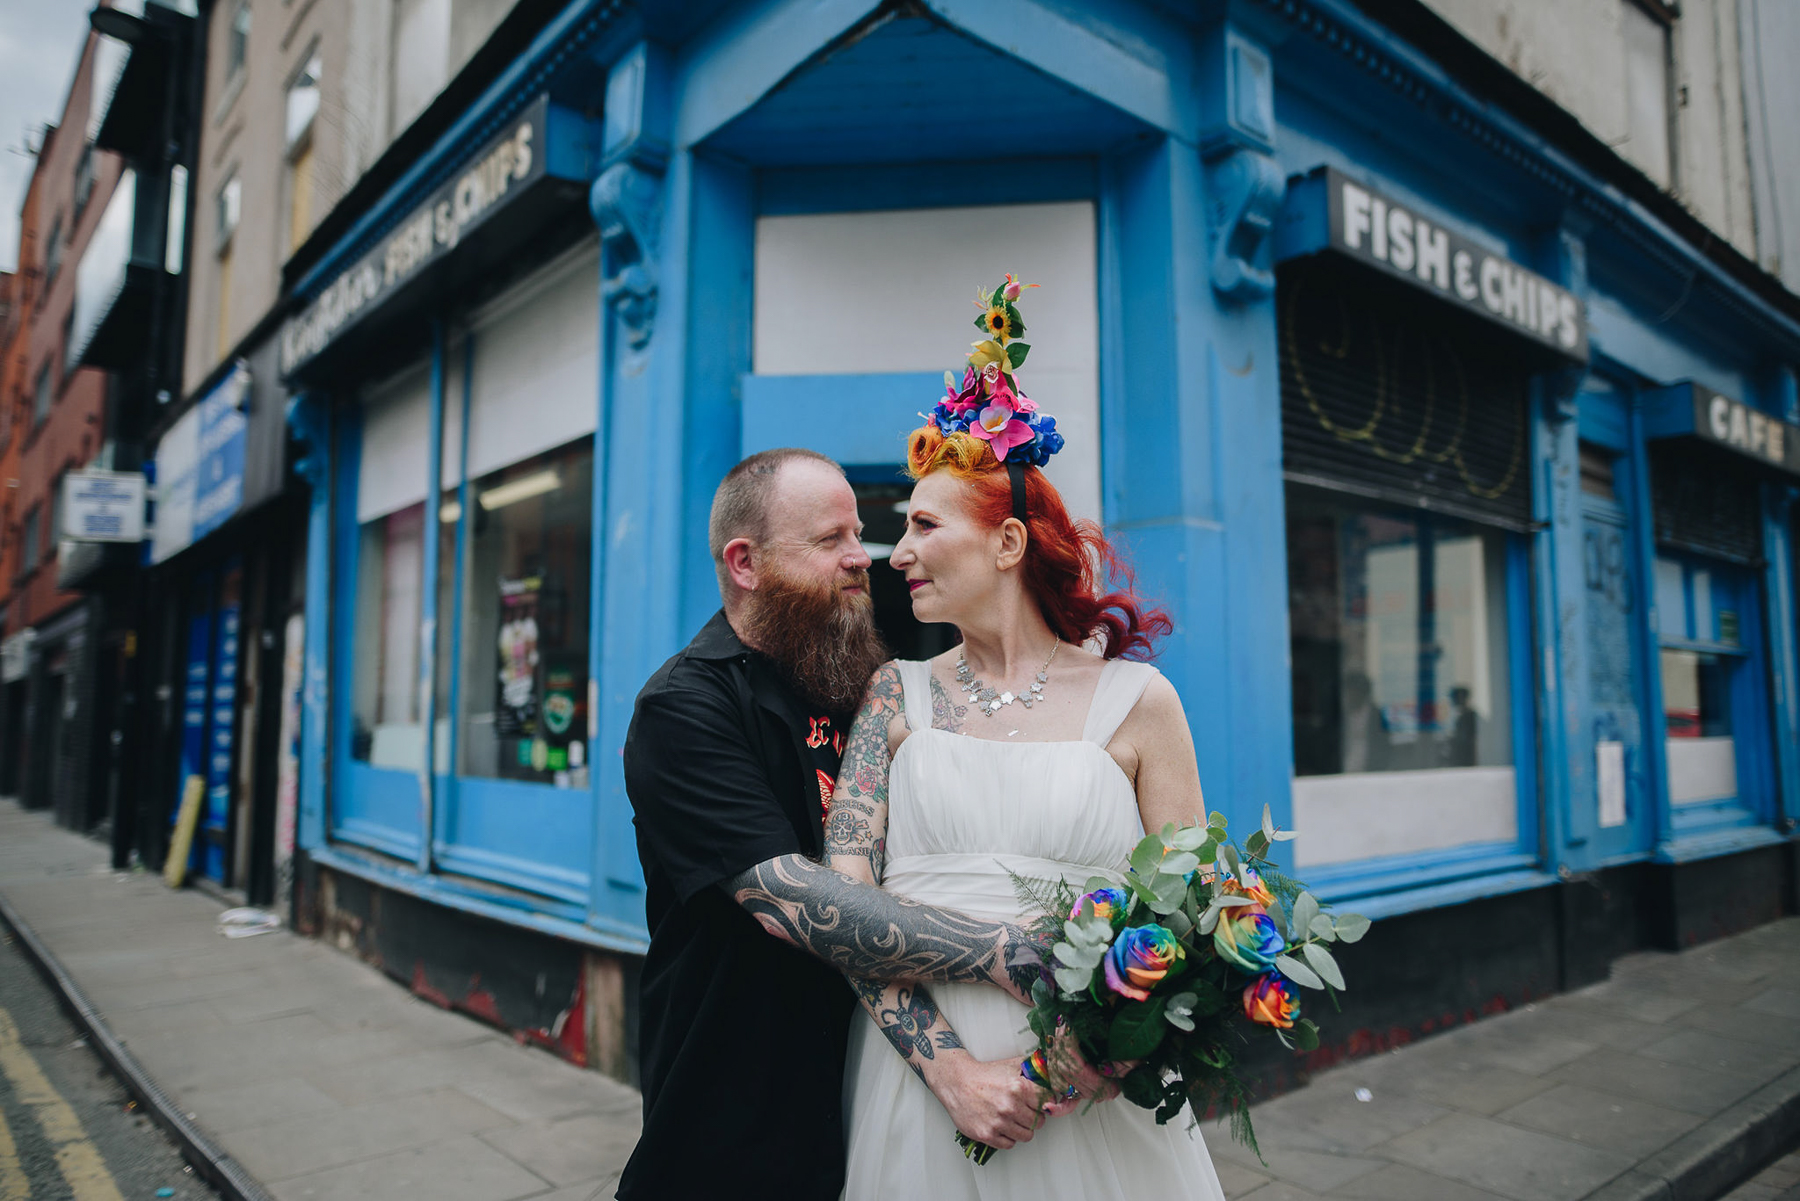 Alternative_Manchester_Northern_Quarter_Wedding_Photography_The_Pin-Up_Bride-56.jpg